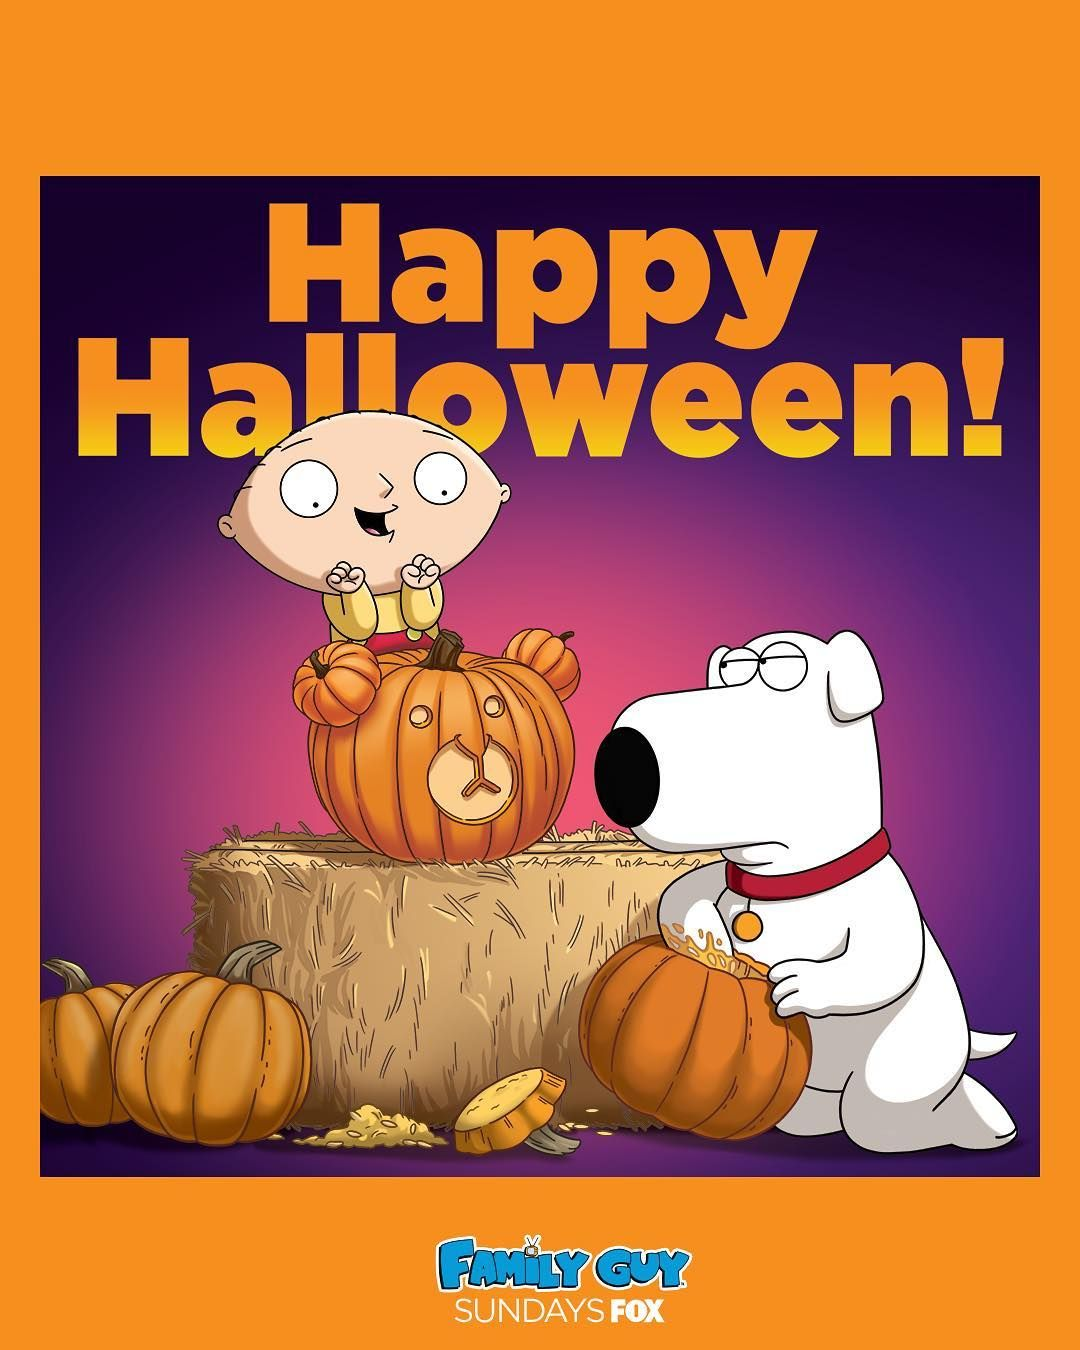 Happy 5th day of Halloween to everyone who started celebrating on ...